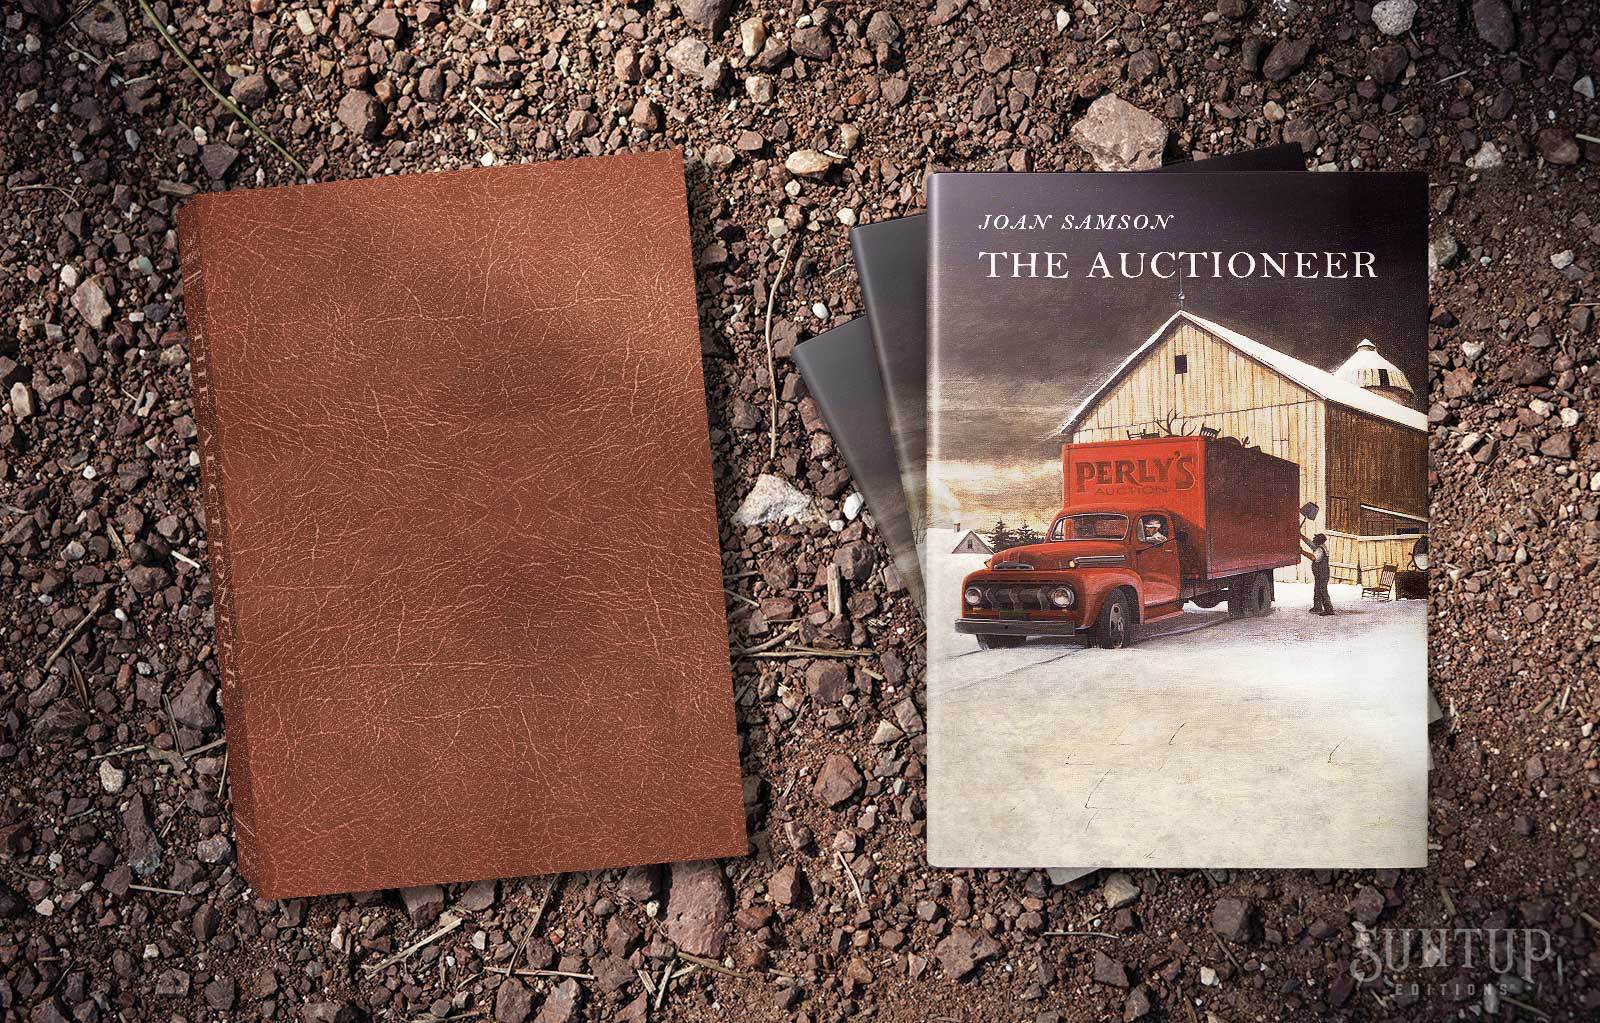 The Auctioneer - Joan Samson - Suntup Editions